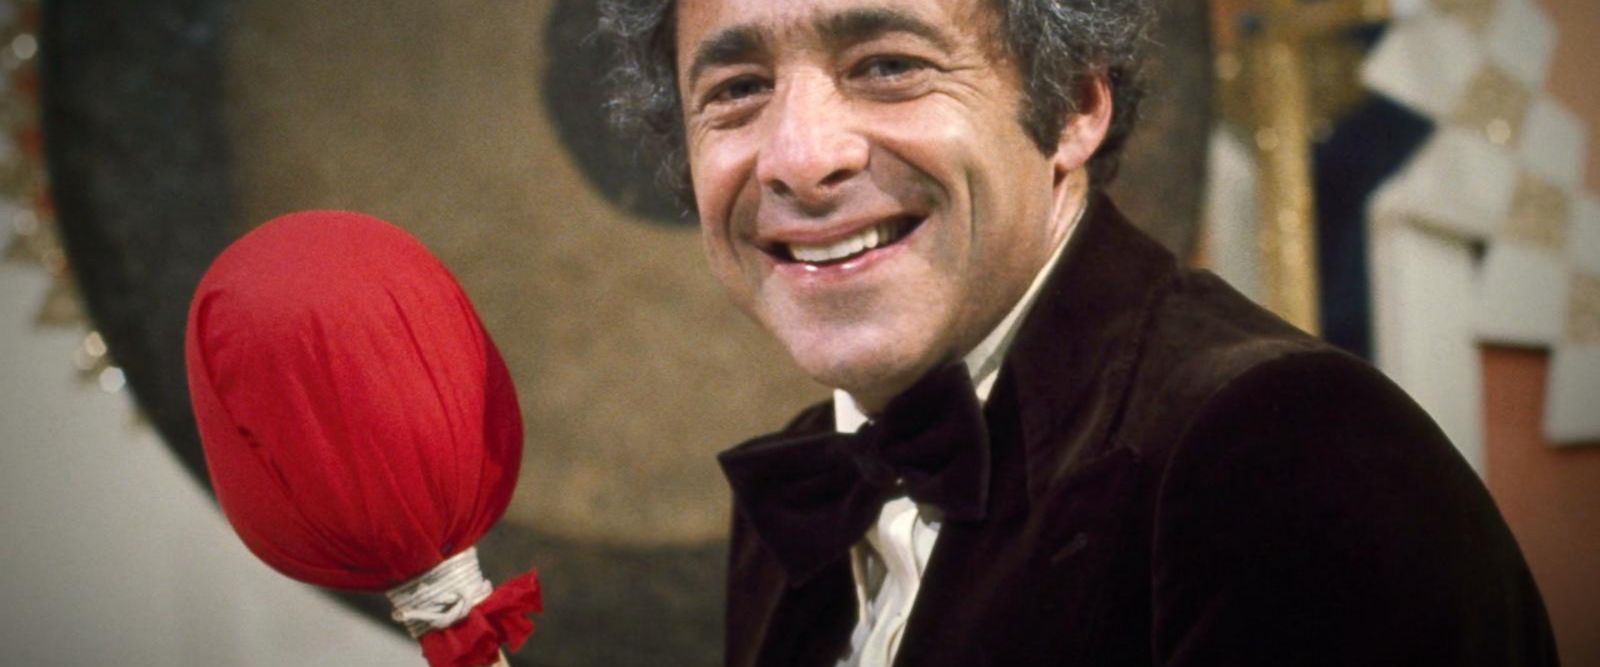 VIDEO: King of game shows Chuck Barris dies at age 87